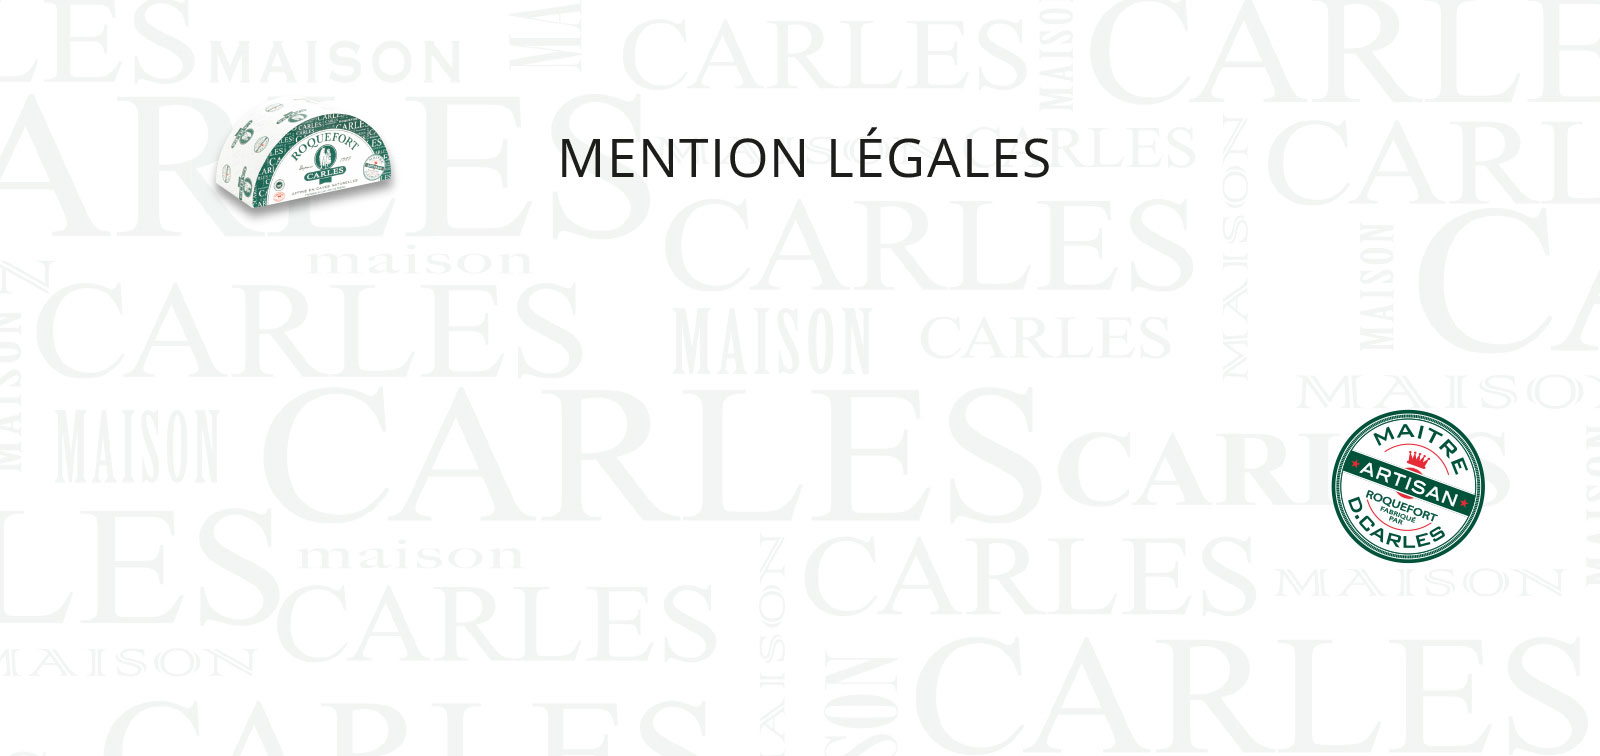 Mention-legale-roquefot-carles